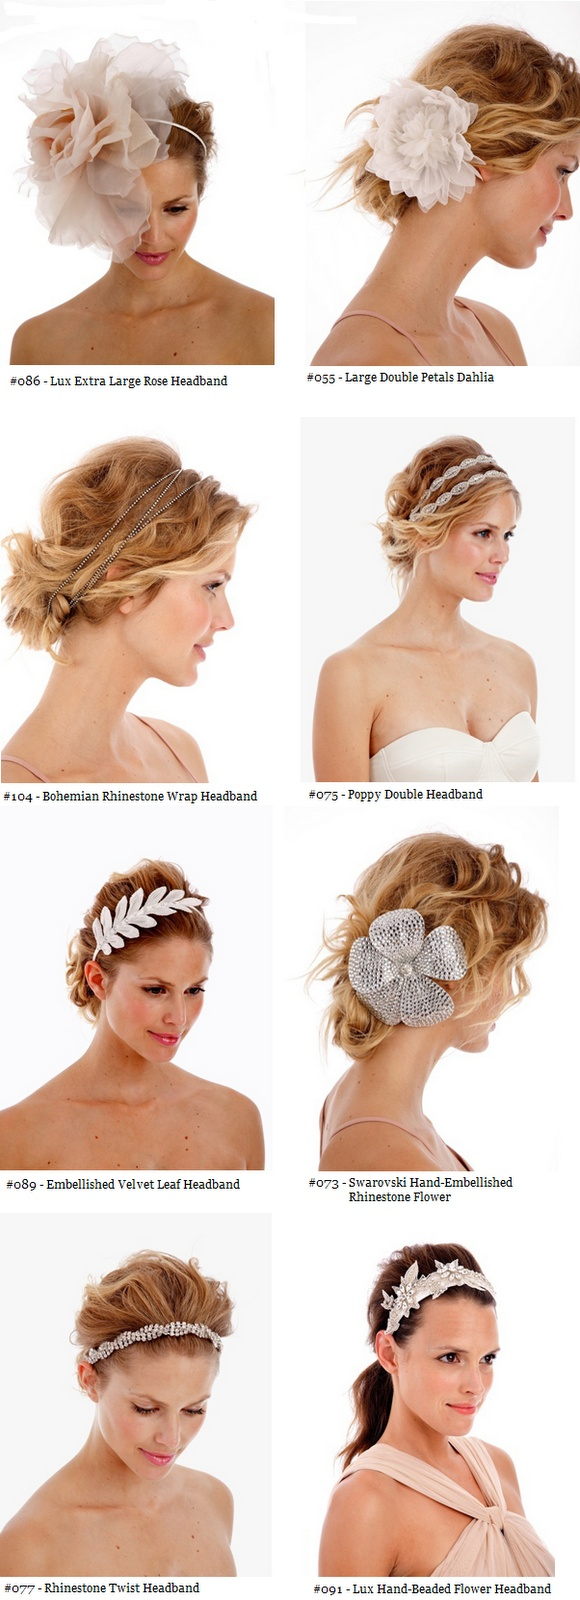 Untamed Petals, Hair Pieces, Floral Pieces, Sparkly Headbands